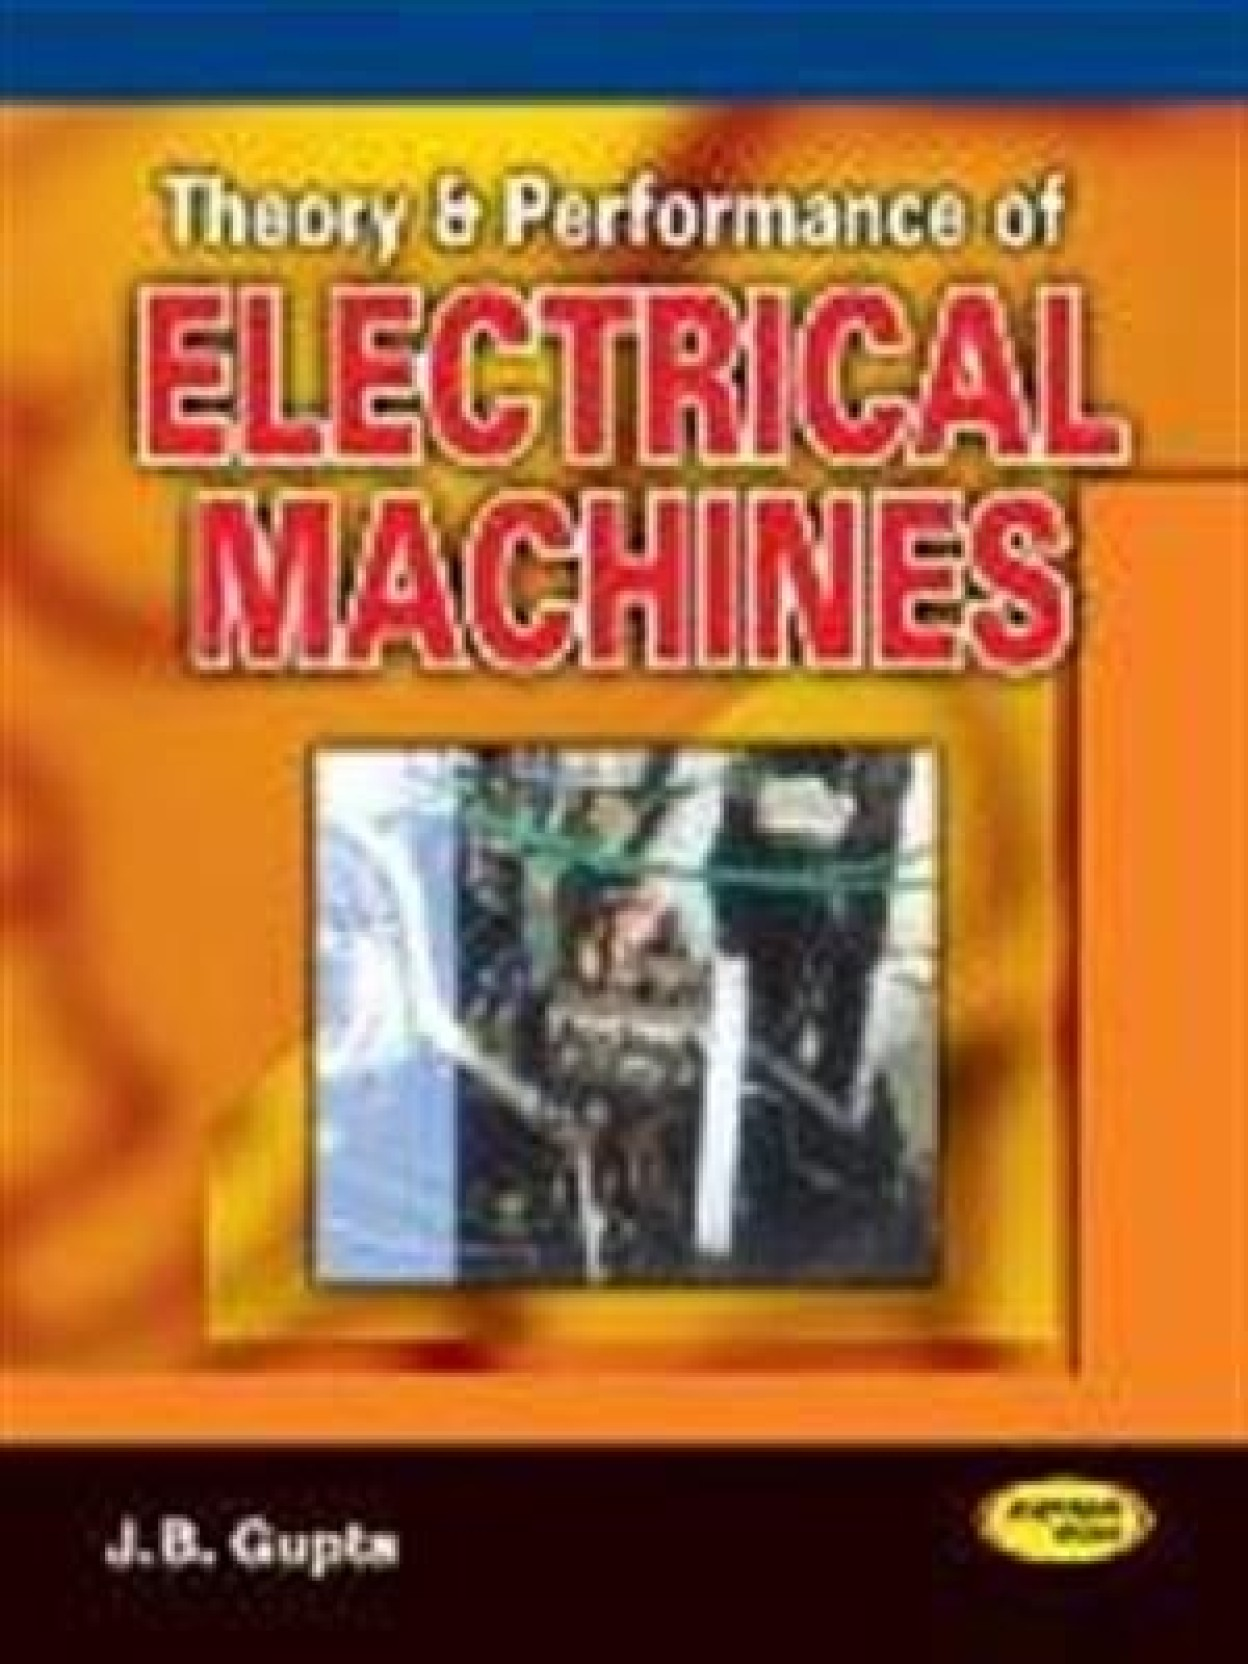 Theory And Performance Of Electrical Machines 14th Edition Buy Electronic Device Circuit Jb Gupta Share